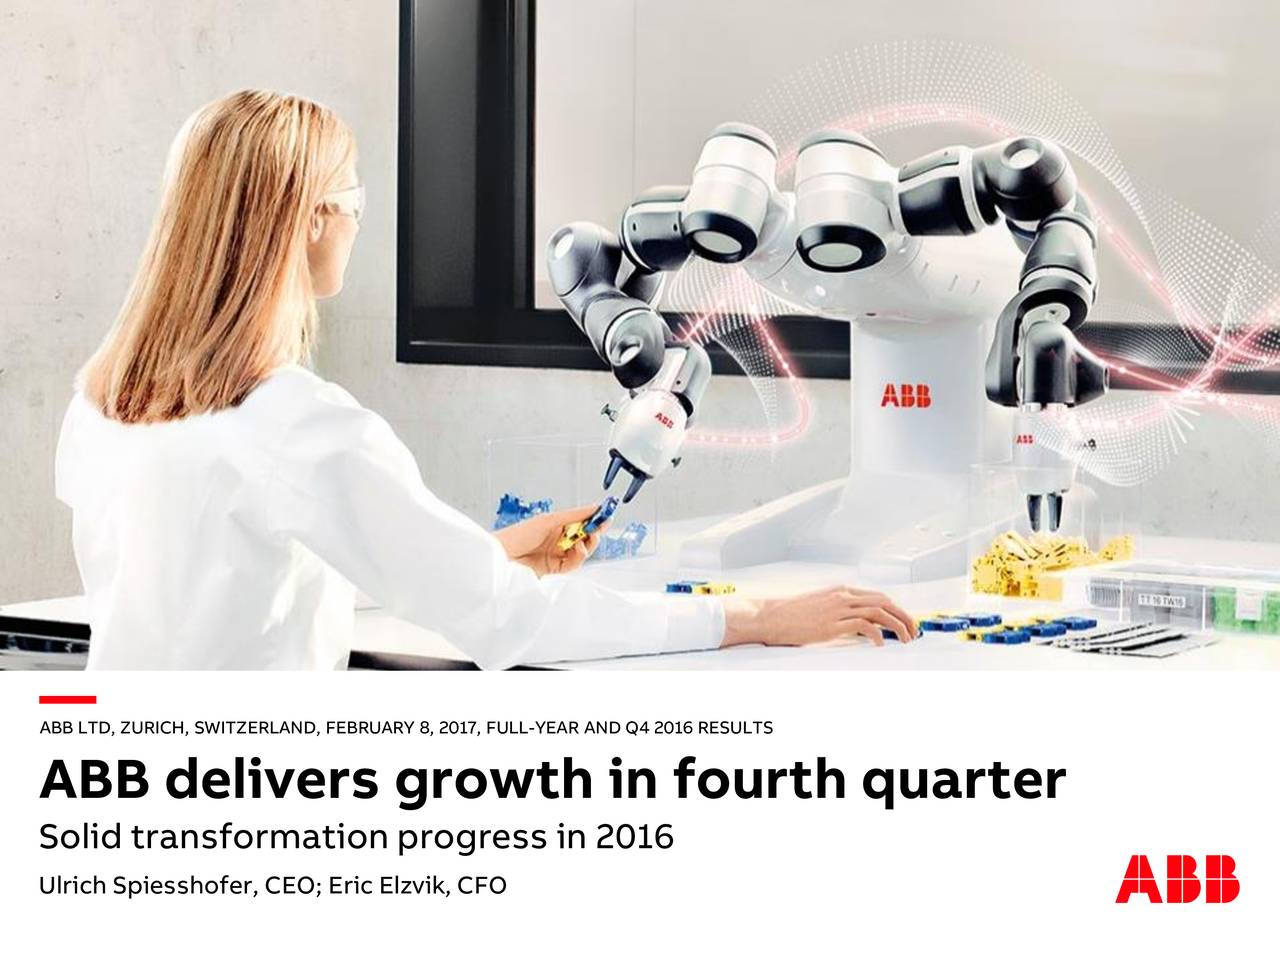 ABB delivers growth in fourth quarter Solid transformation progress in 2016 Ulrich Spiesshofer, CEO; Eric Elzvik, CFO